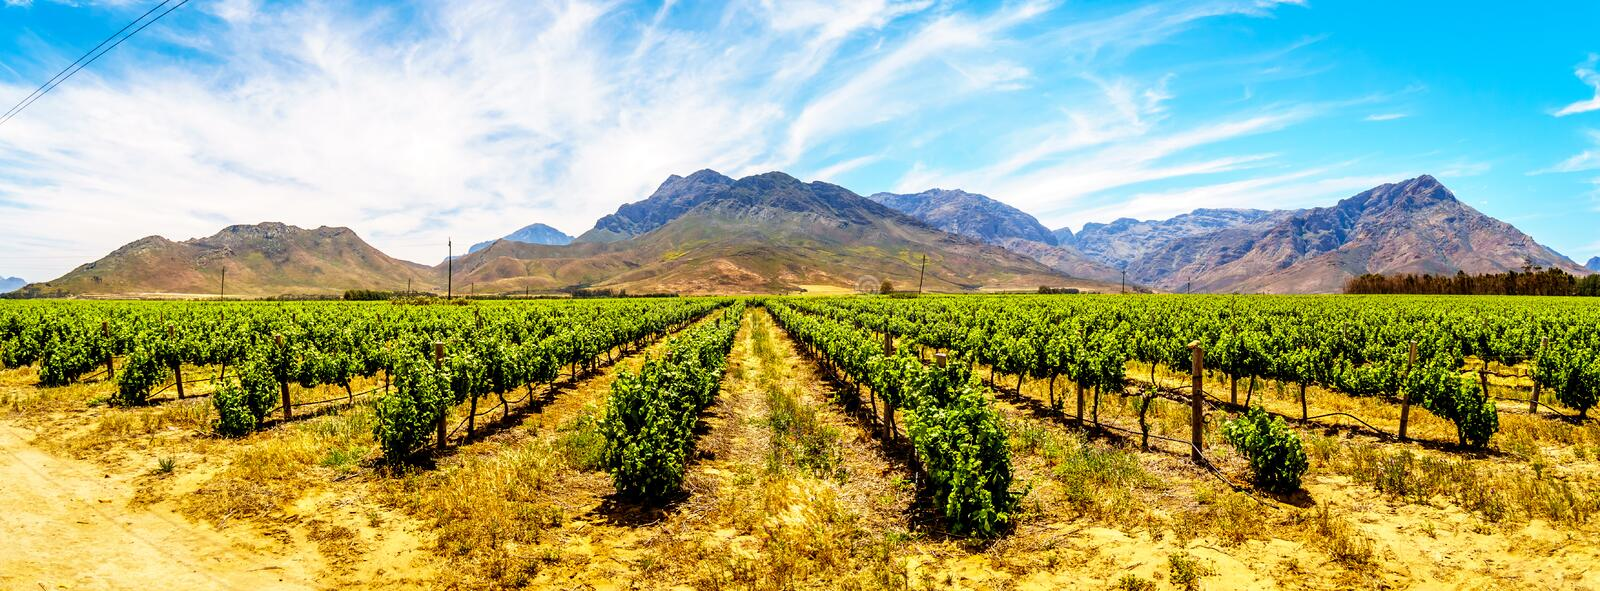 Panorama of Vineyards and surrounding mountains in spring in the Boland Wine Region of the Western Cape royalty free stock photos